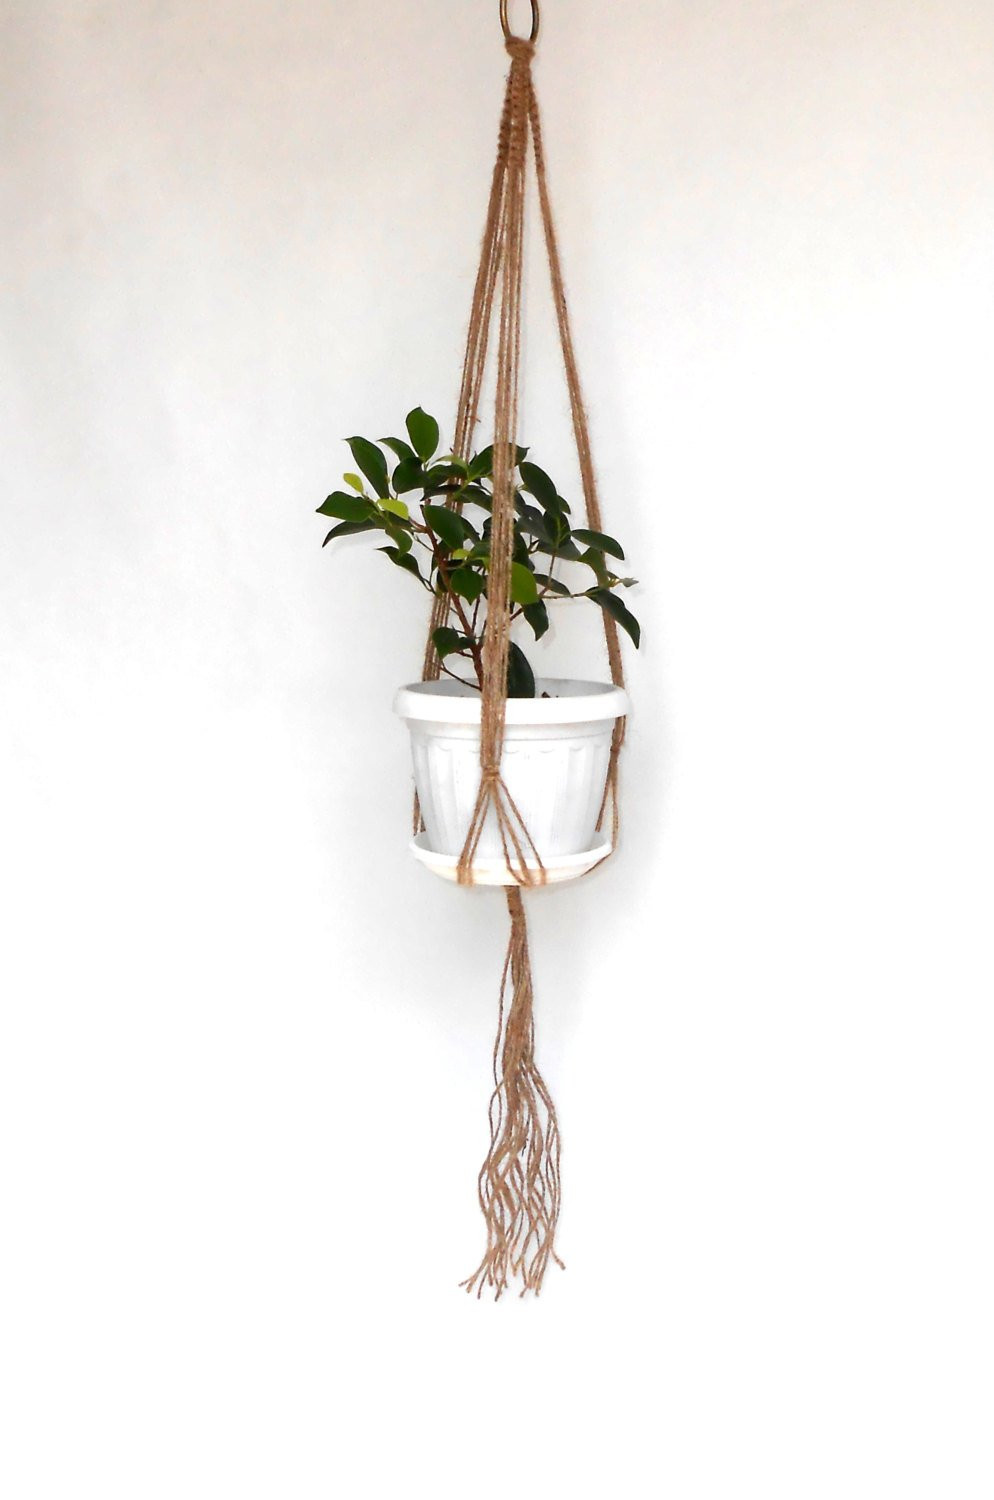 Hanging Plant Holders Unique Macrame Plant Hanger 24 Natural Jute Macrame Plant Of Wonderful 48 Ideas Hanging Plant Holders